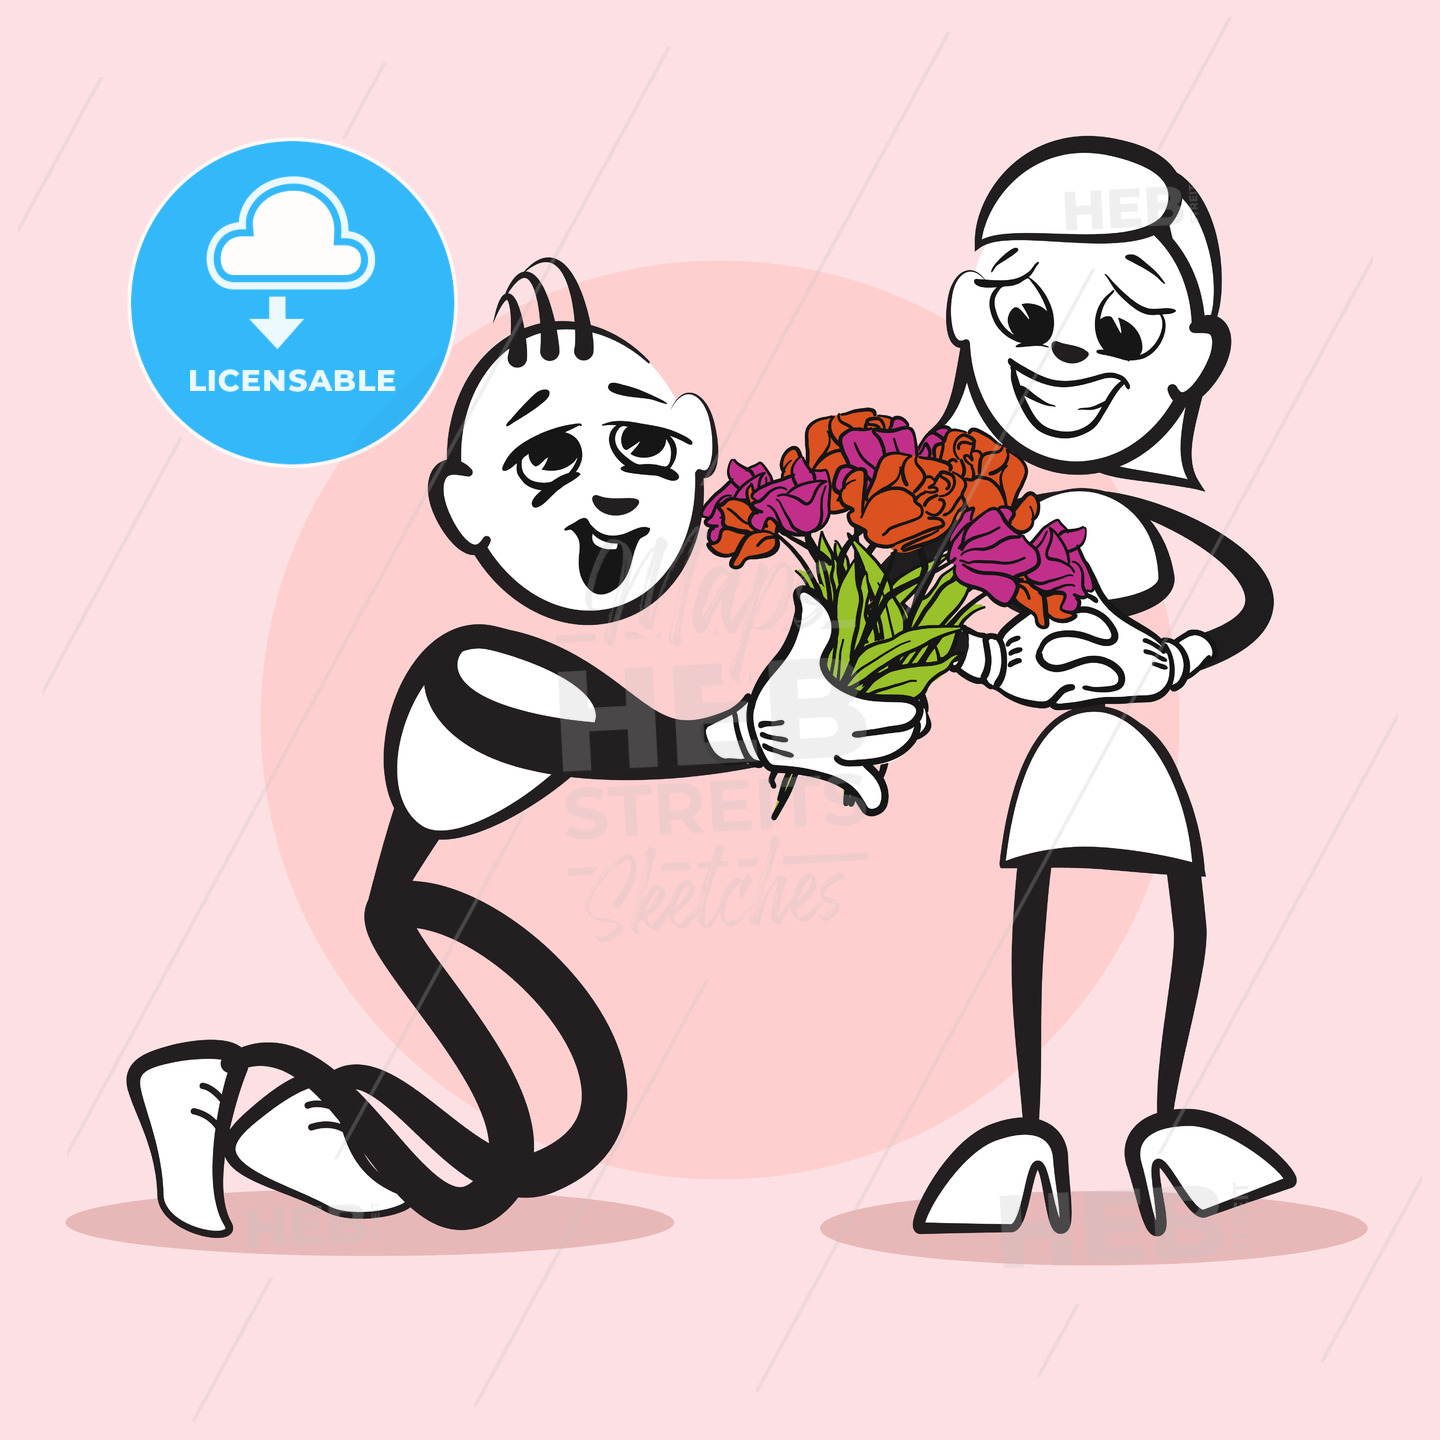 Proposal Marriage Stickman Emotion - Hebstreits